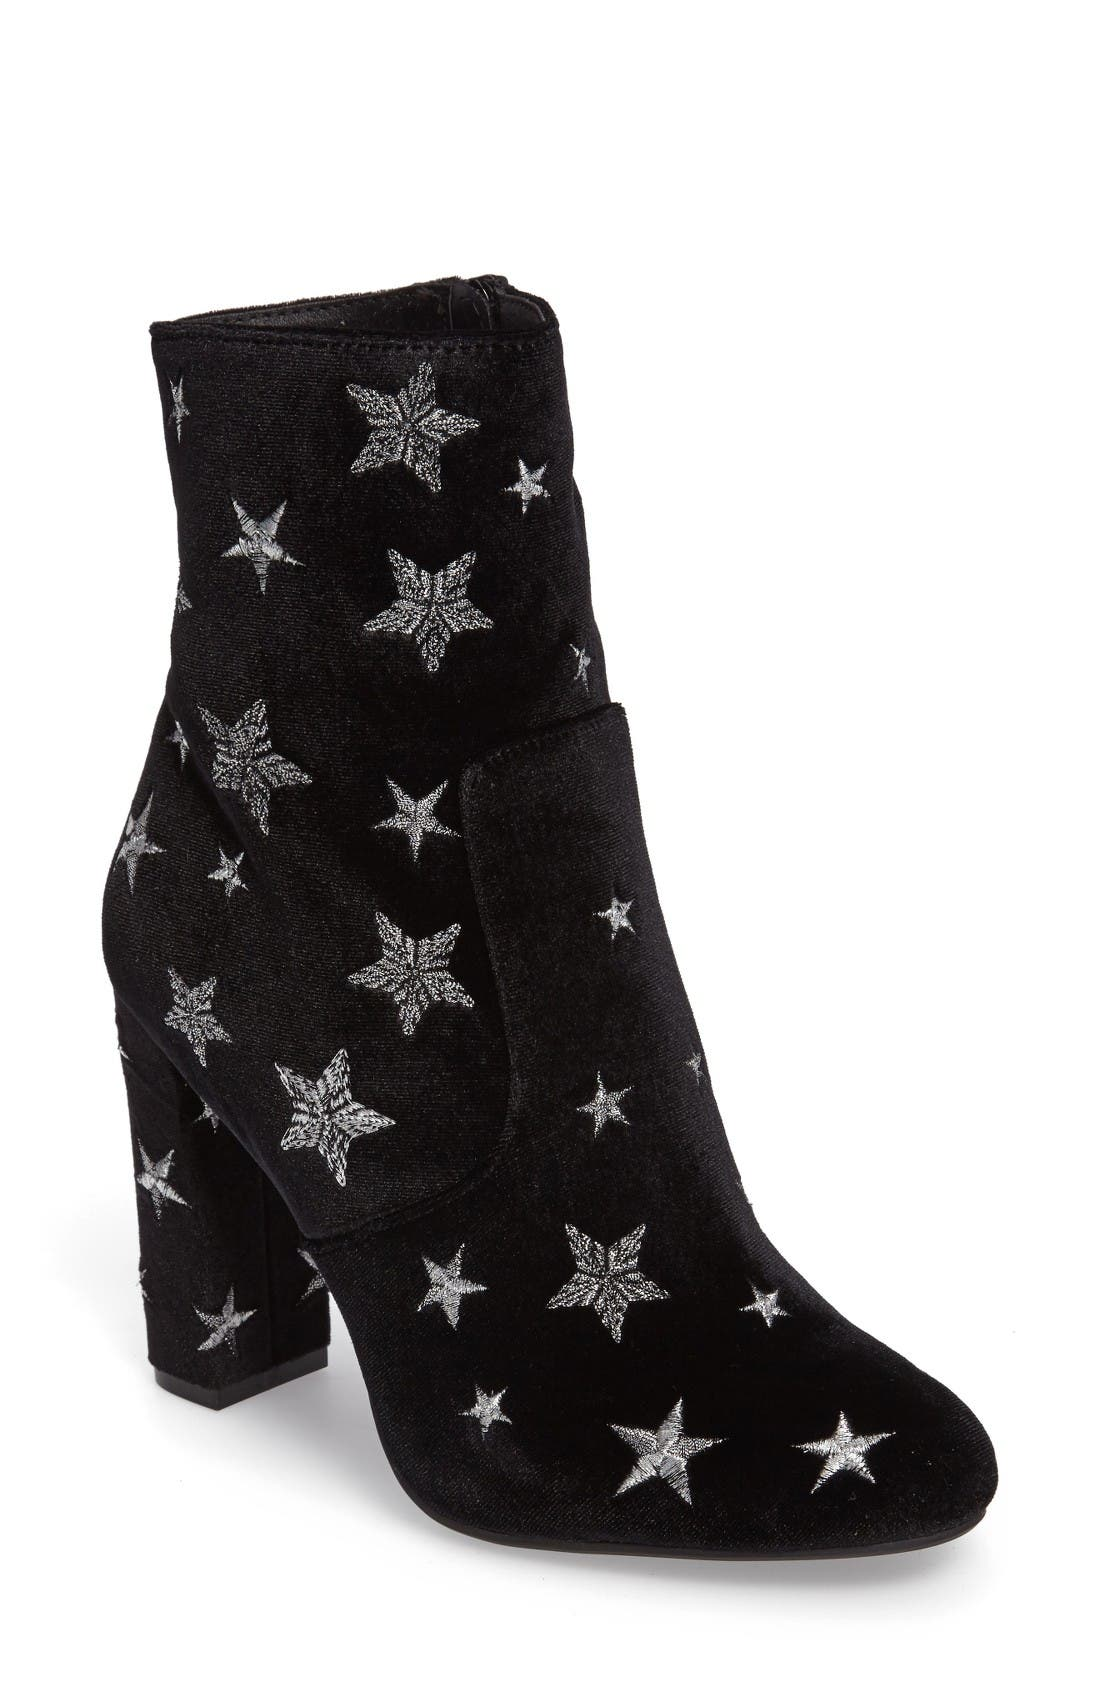 Alternate Image 1 Selected - Steve Madden Edit Embroidered Star Bootie (Women)